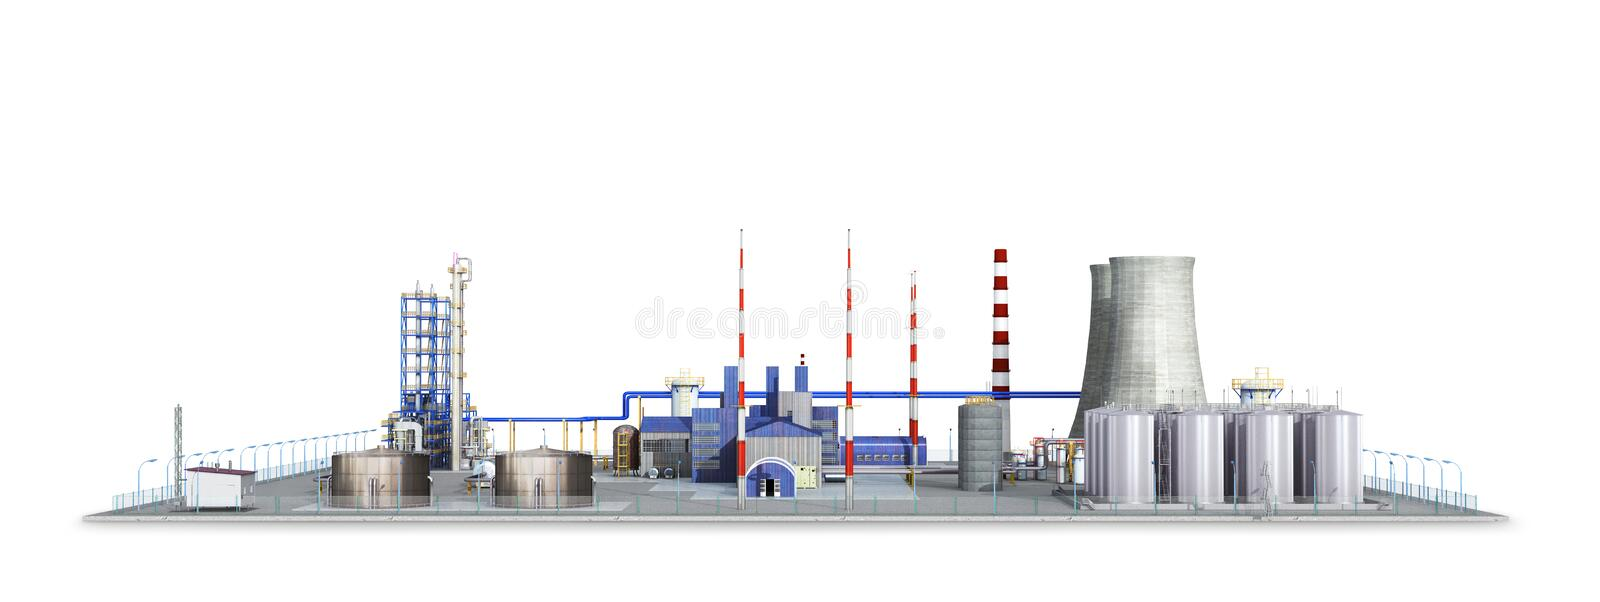 Factory, Isolated on white background. vector illustration